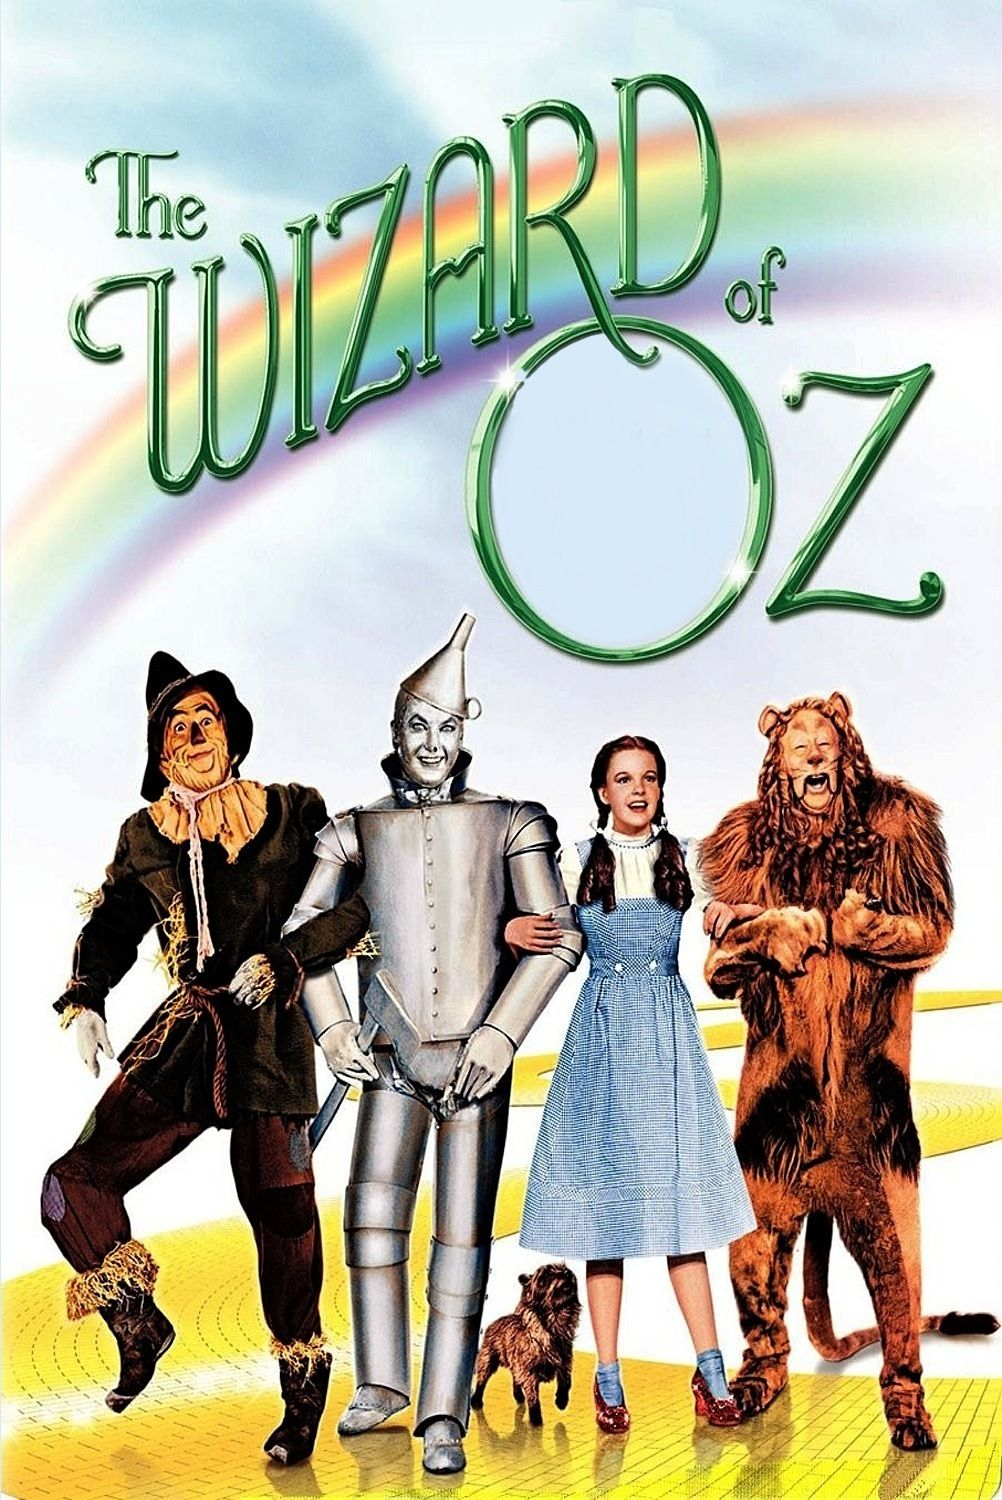 The Wizard of Oz (1939) (With images) Full movies online